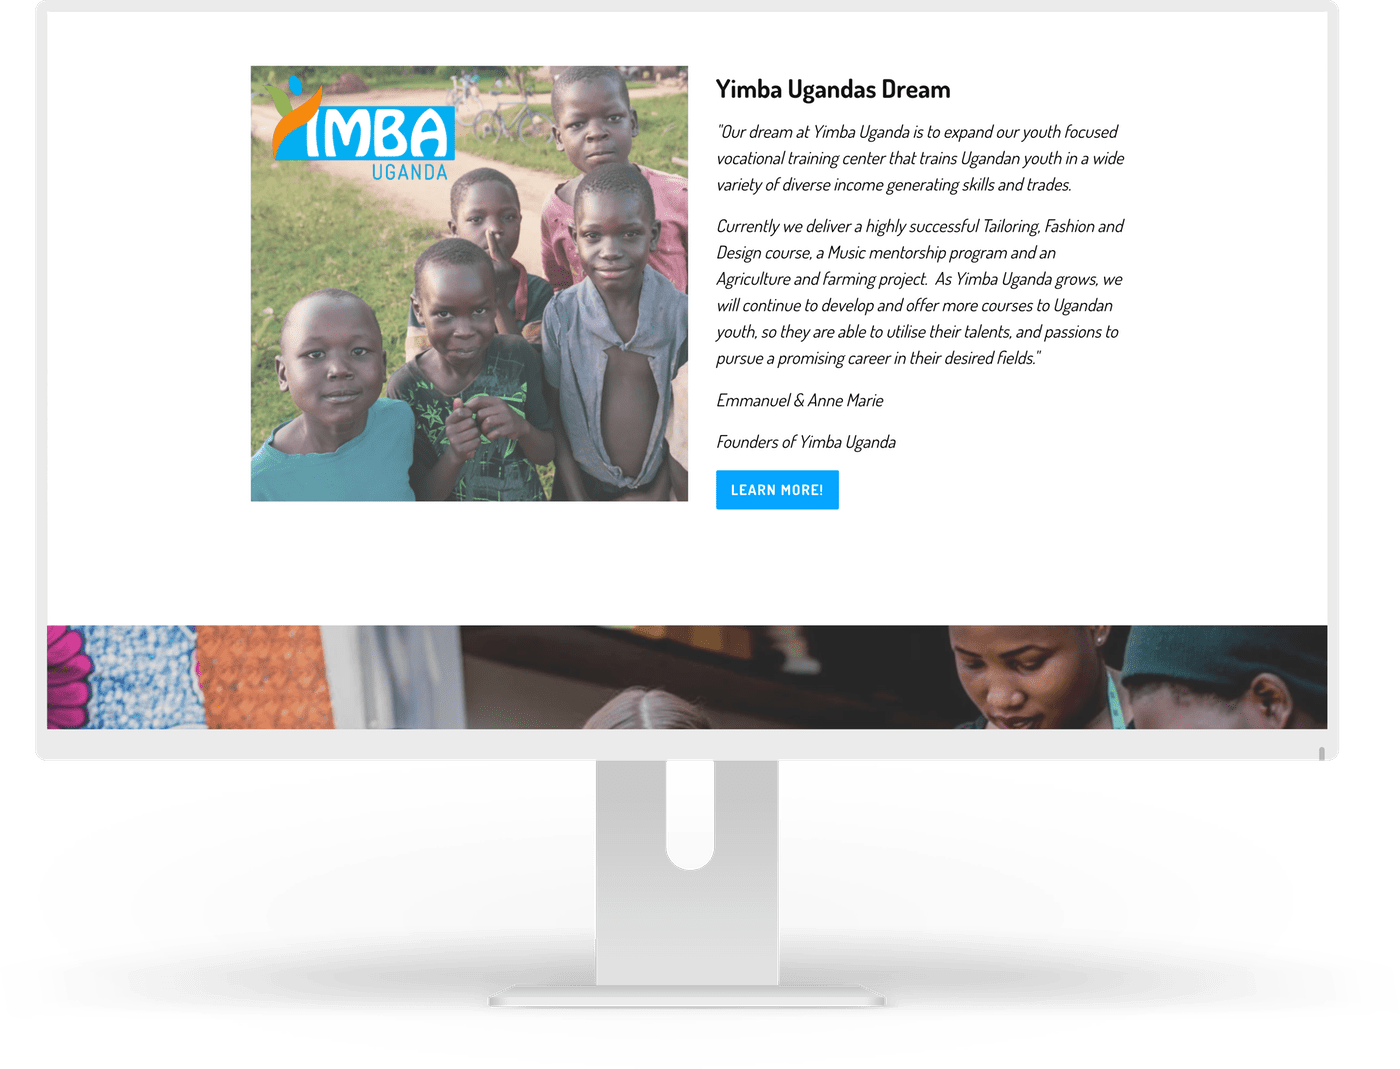 Shopify Yimba Uganda Website by Ten Squared